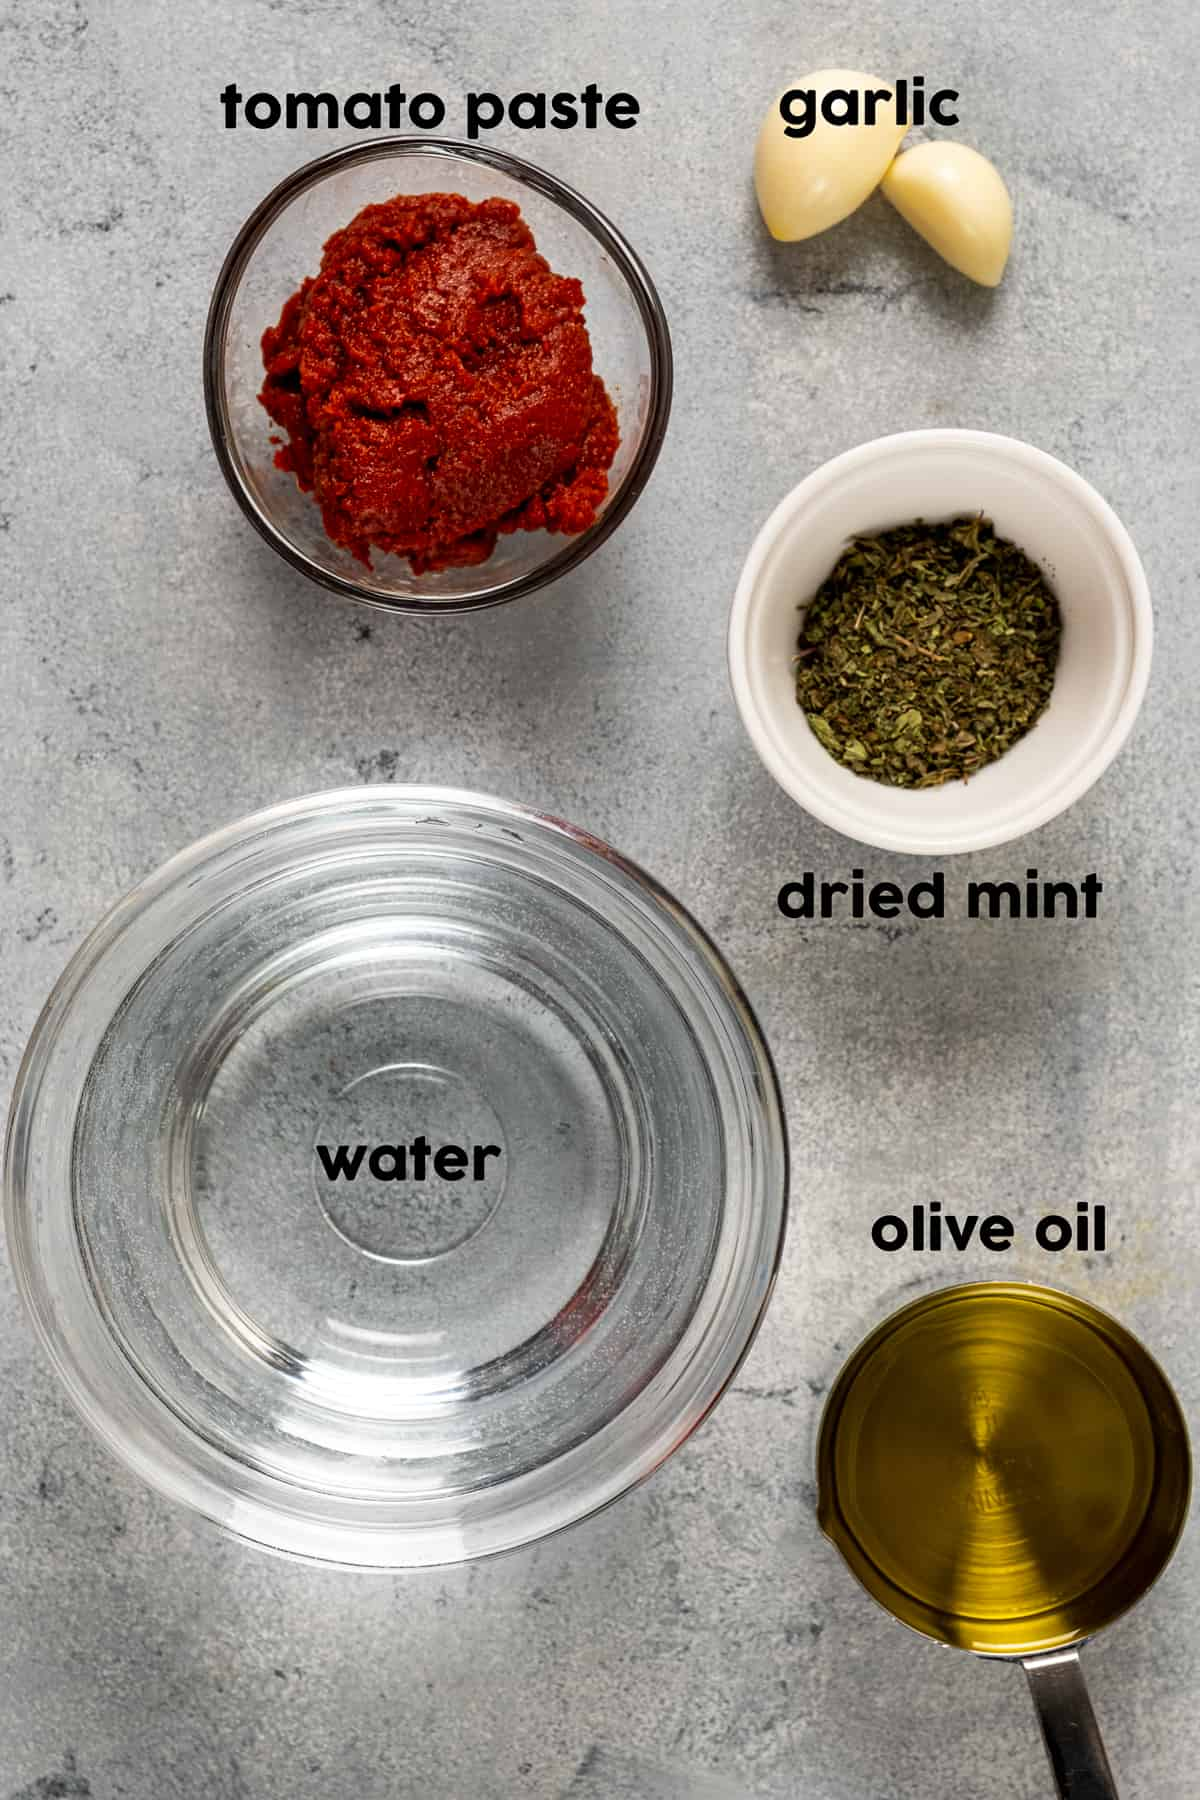 Water, tomato paste, dried mint, garlic and olive oil photographed on a light background.